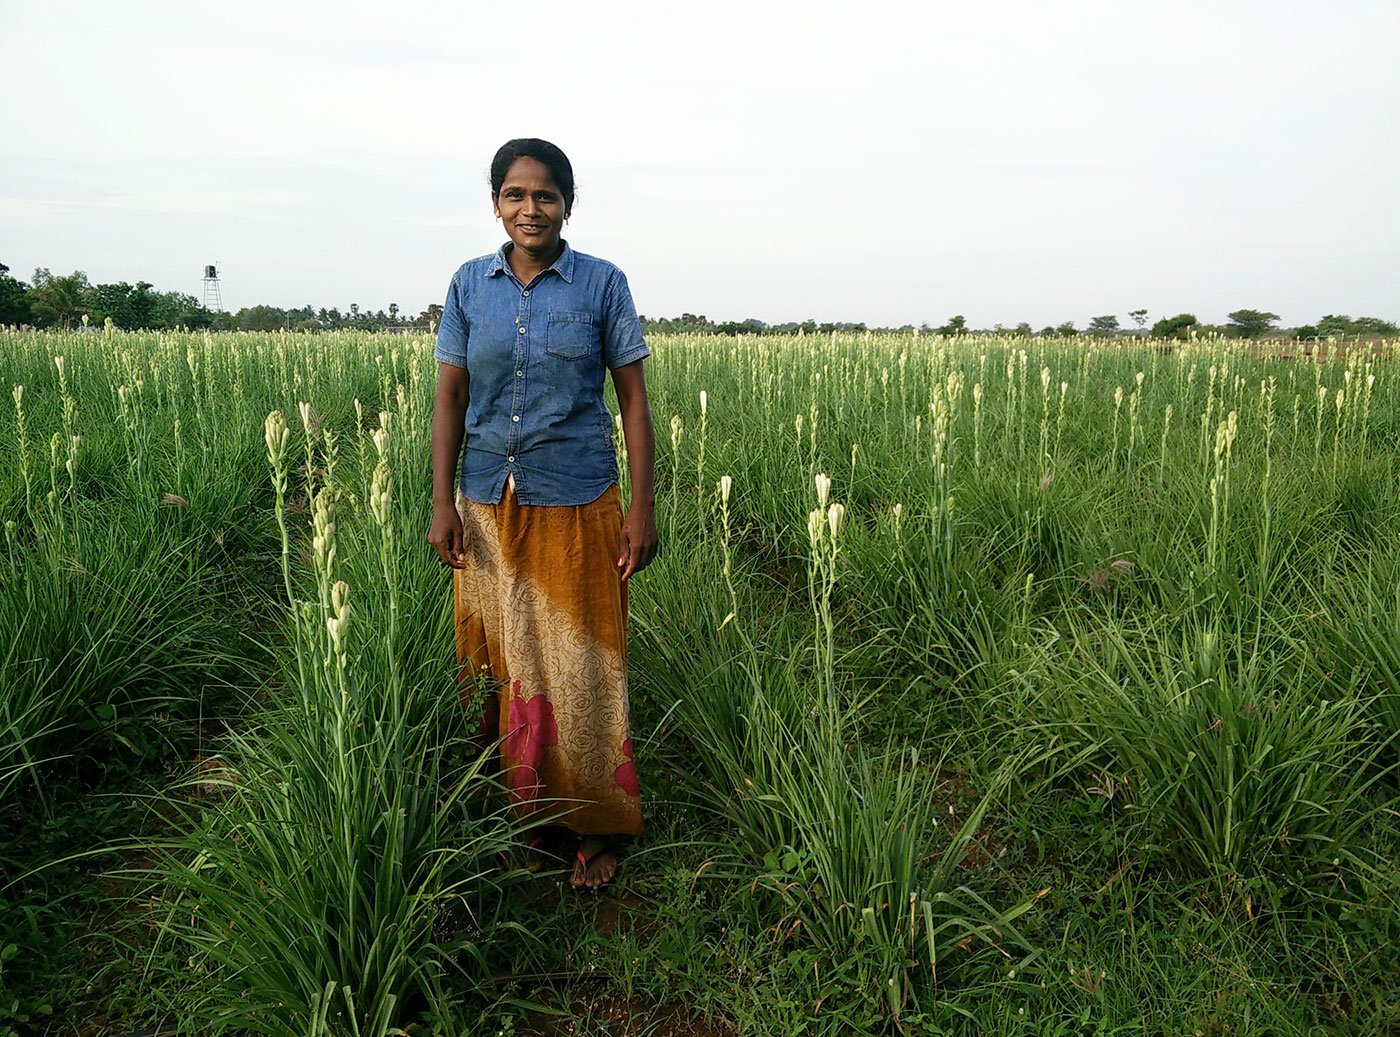 Chandra in her field of tuberose flowers